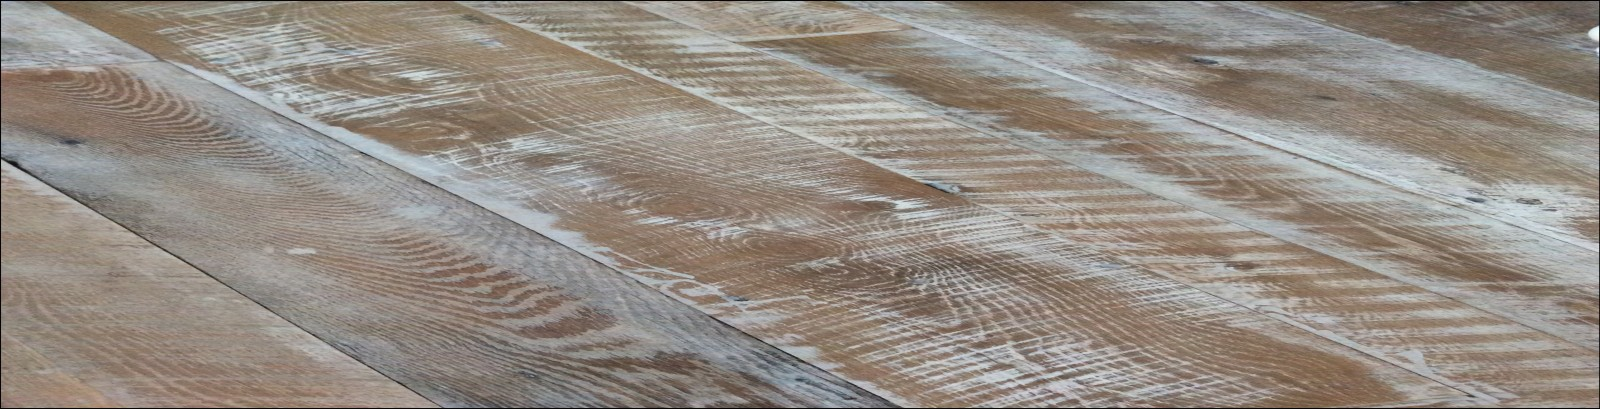 Reclaimed Hampton Falls Flooring - Reclaimed Mixed Oak Flooring with natural texture and face and an custom sanded white wash finish